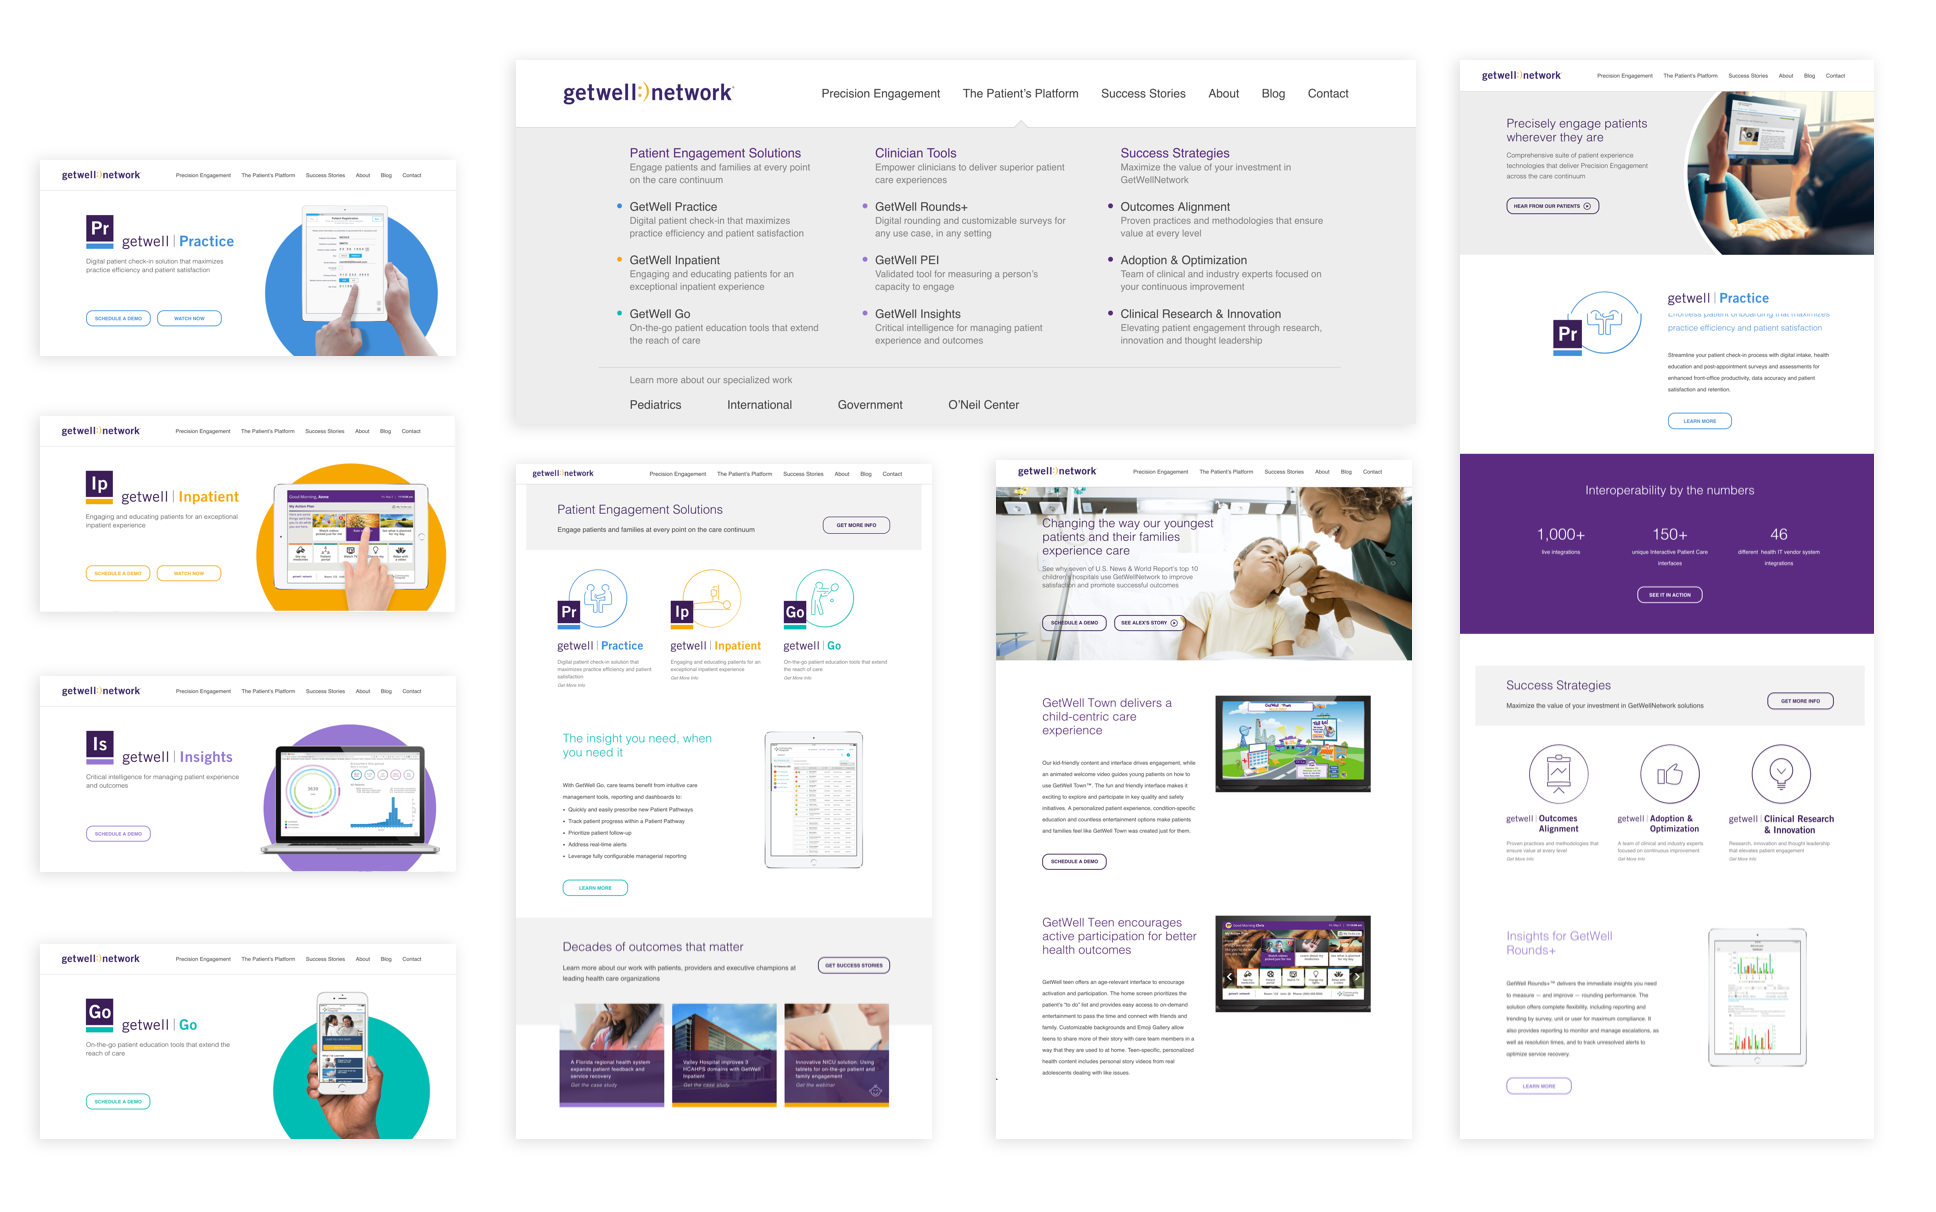 To amplify the fantastic success of GetWell's product, we relaunched their corporate website. The relaunch also coincided with our modernizing of their go-to-market materials, pricing, and product packaging architecture.